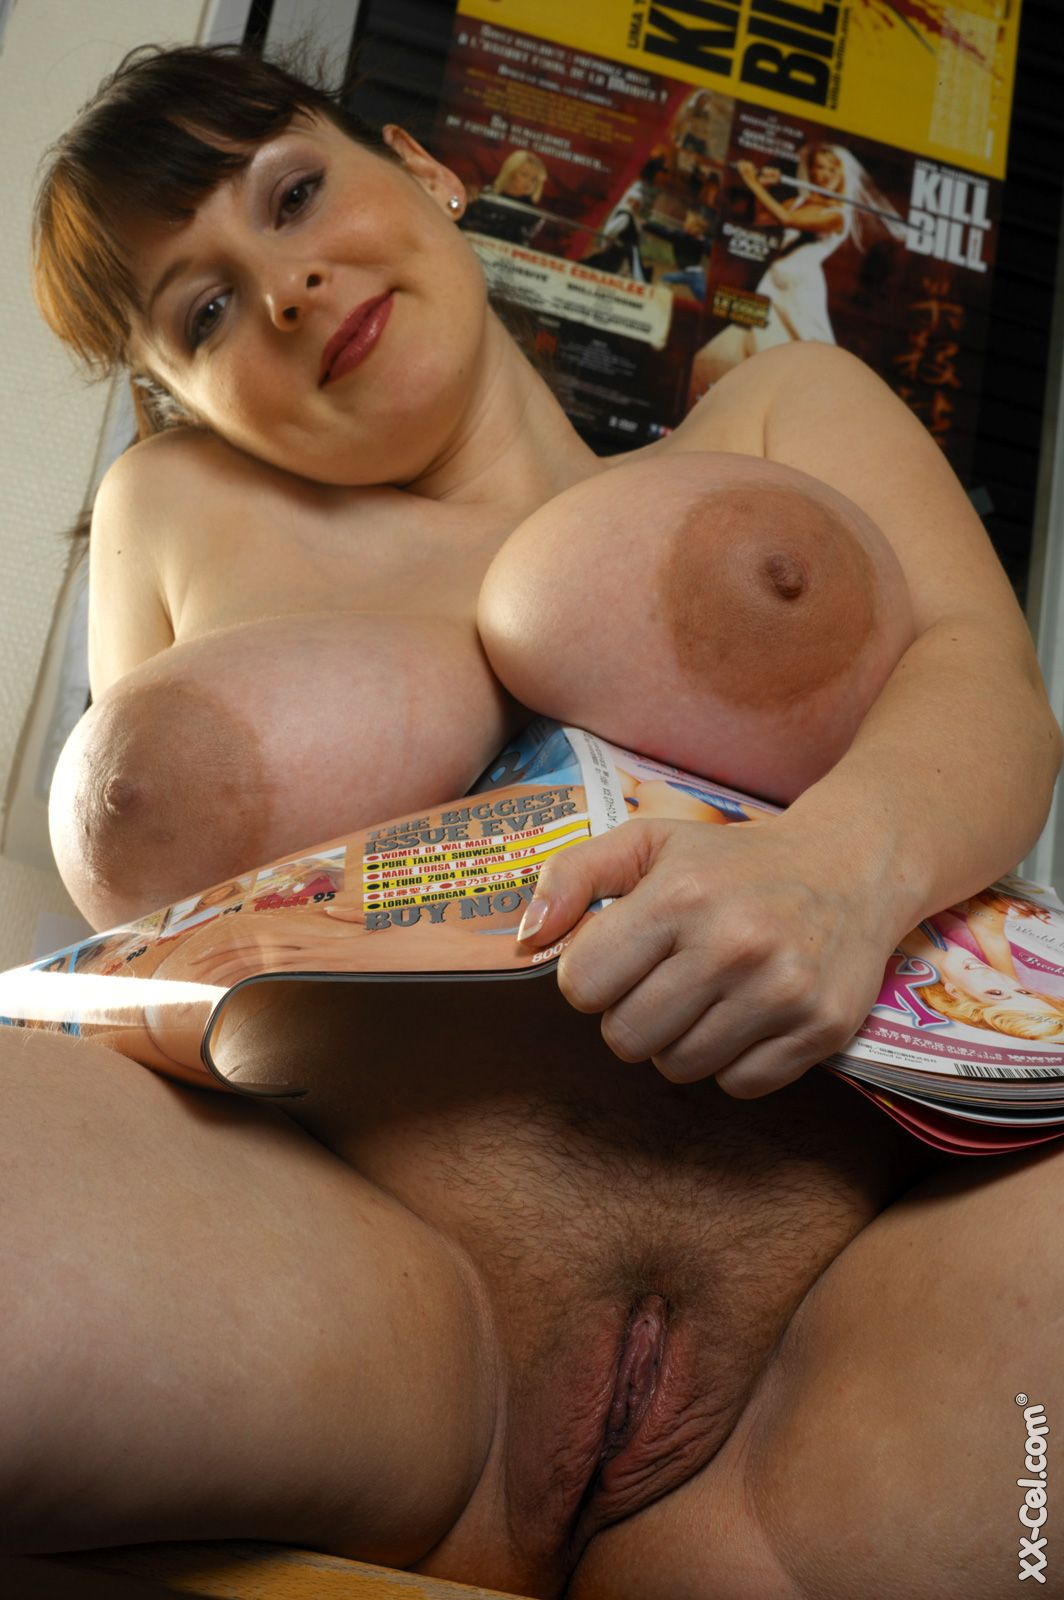 Girls with big areolas consider